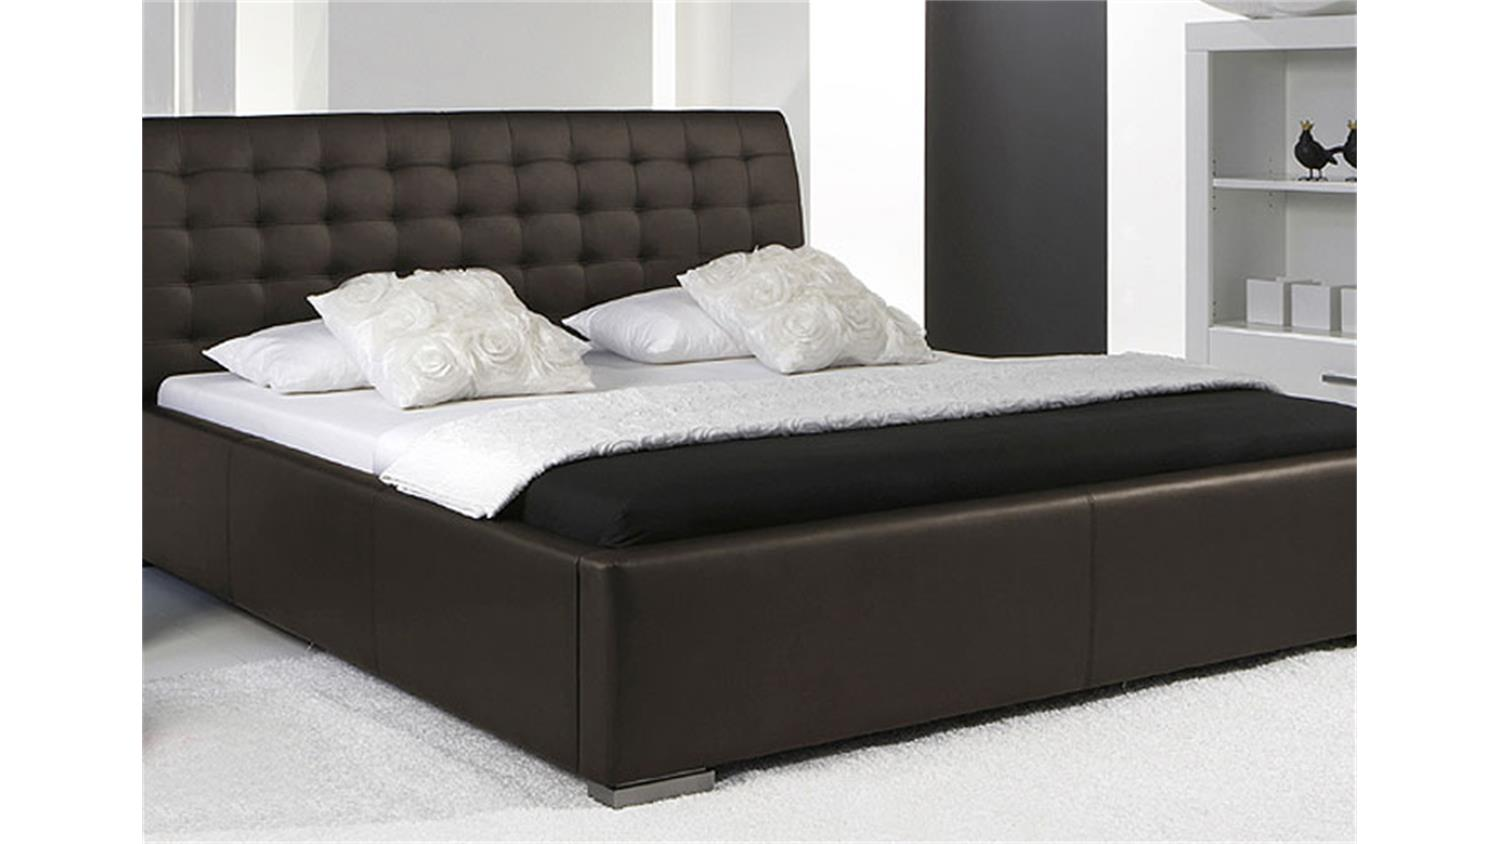 polsterbett sabi ii bett in braun mit komforth he 180x200. Black Bedroom Furniture Sets. Home Design Ideas